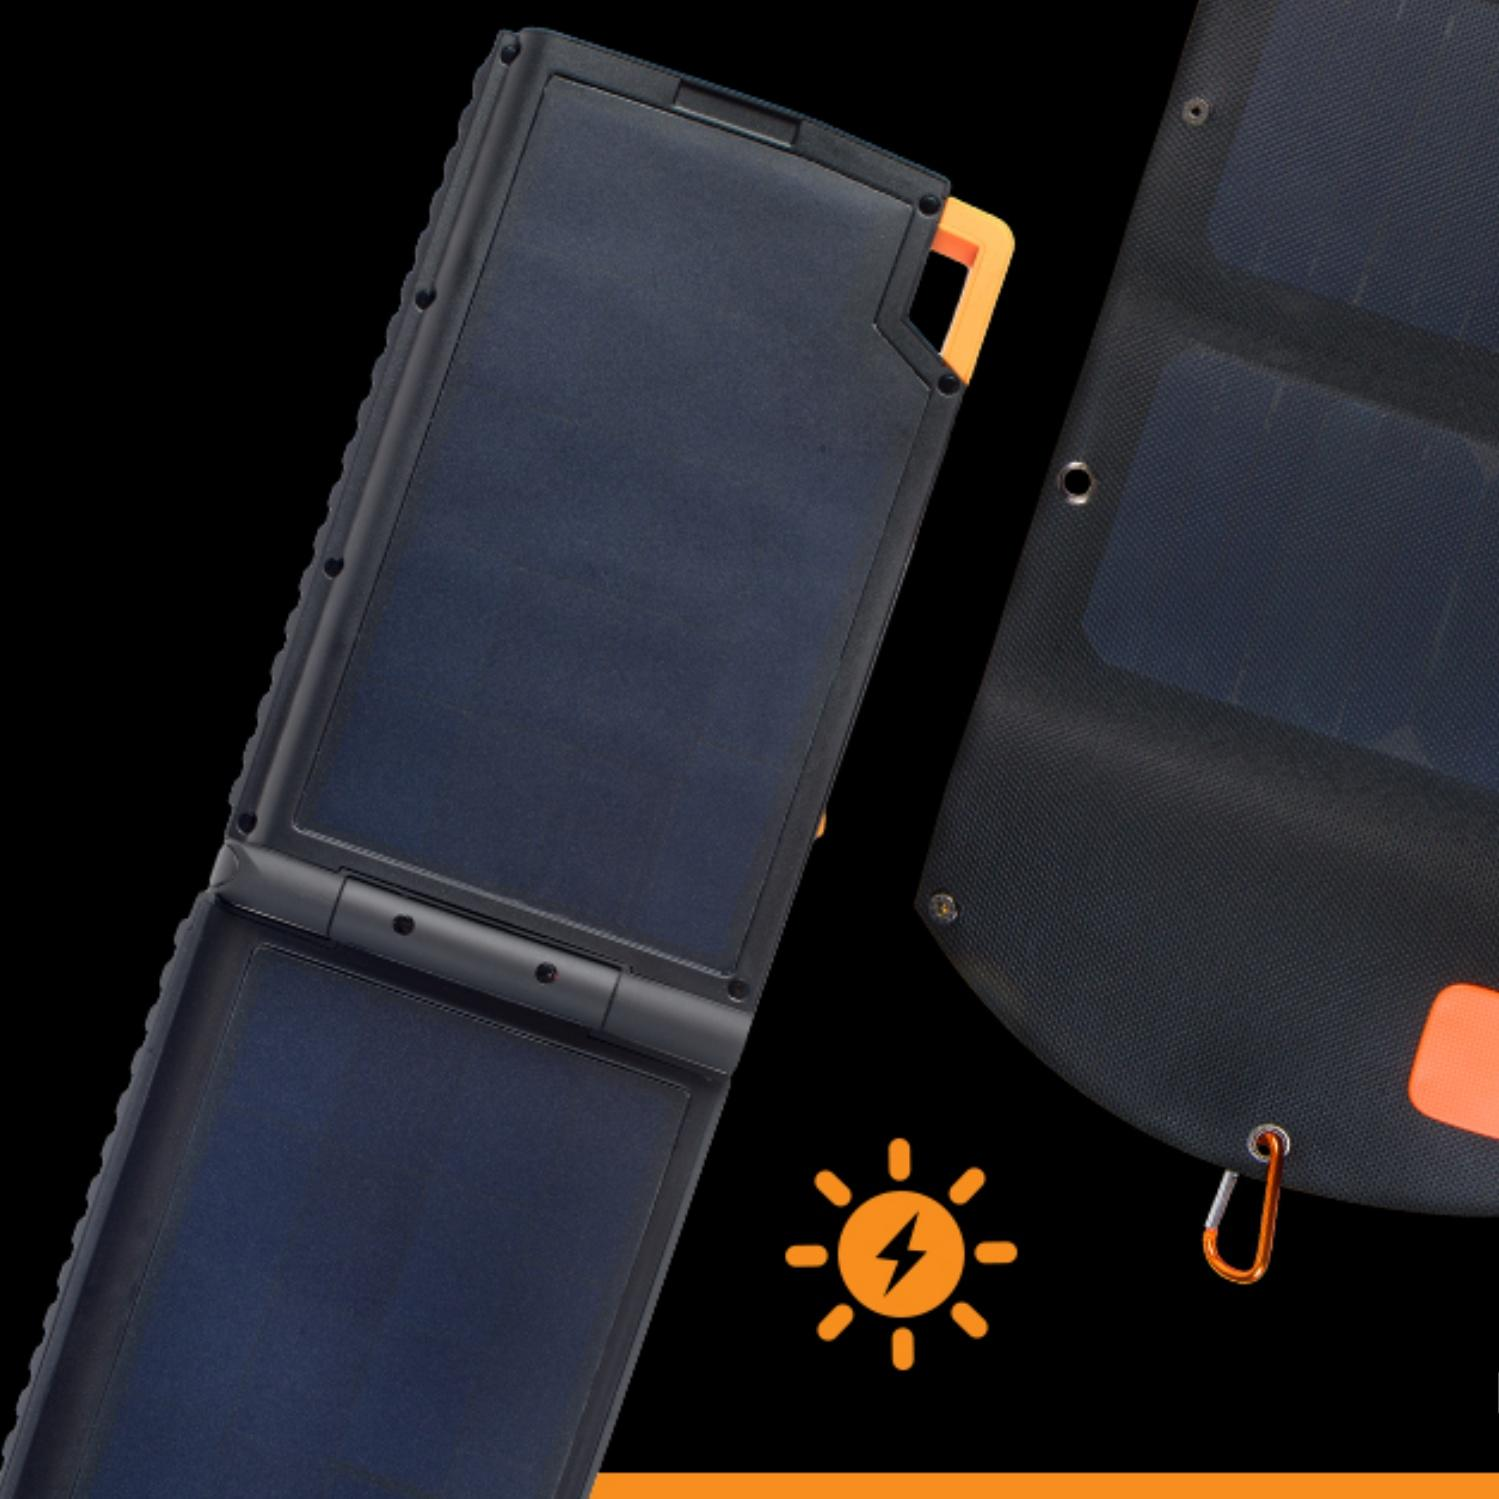 solar chargers for generating power outdoors